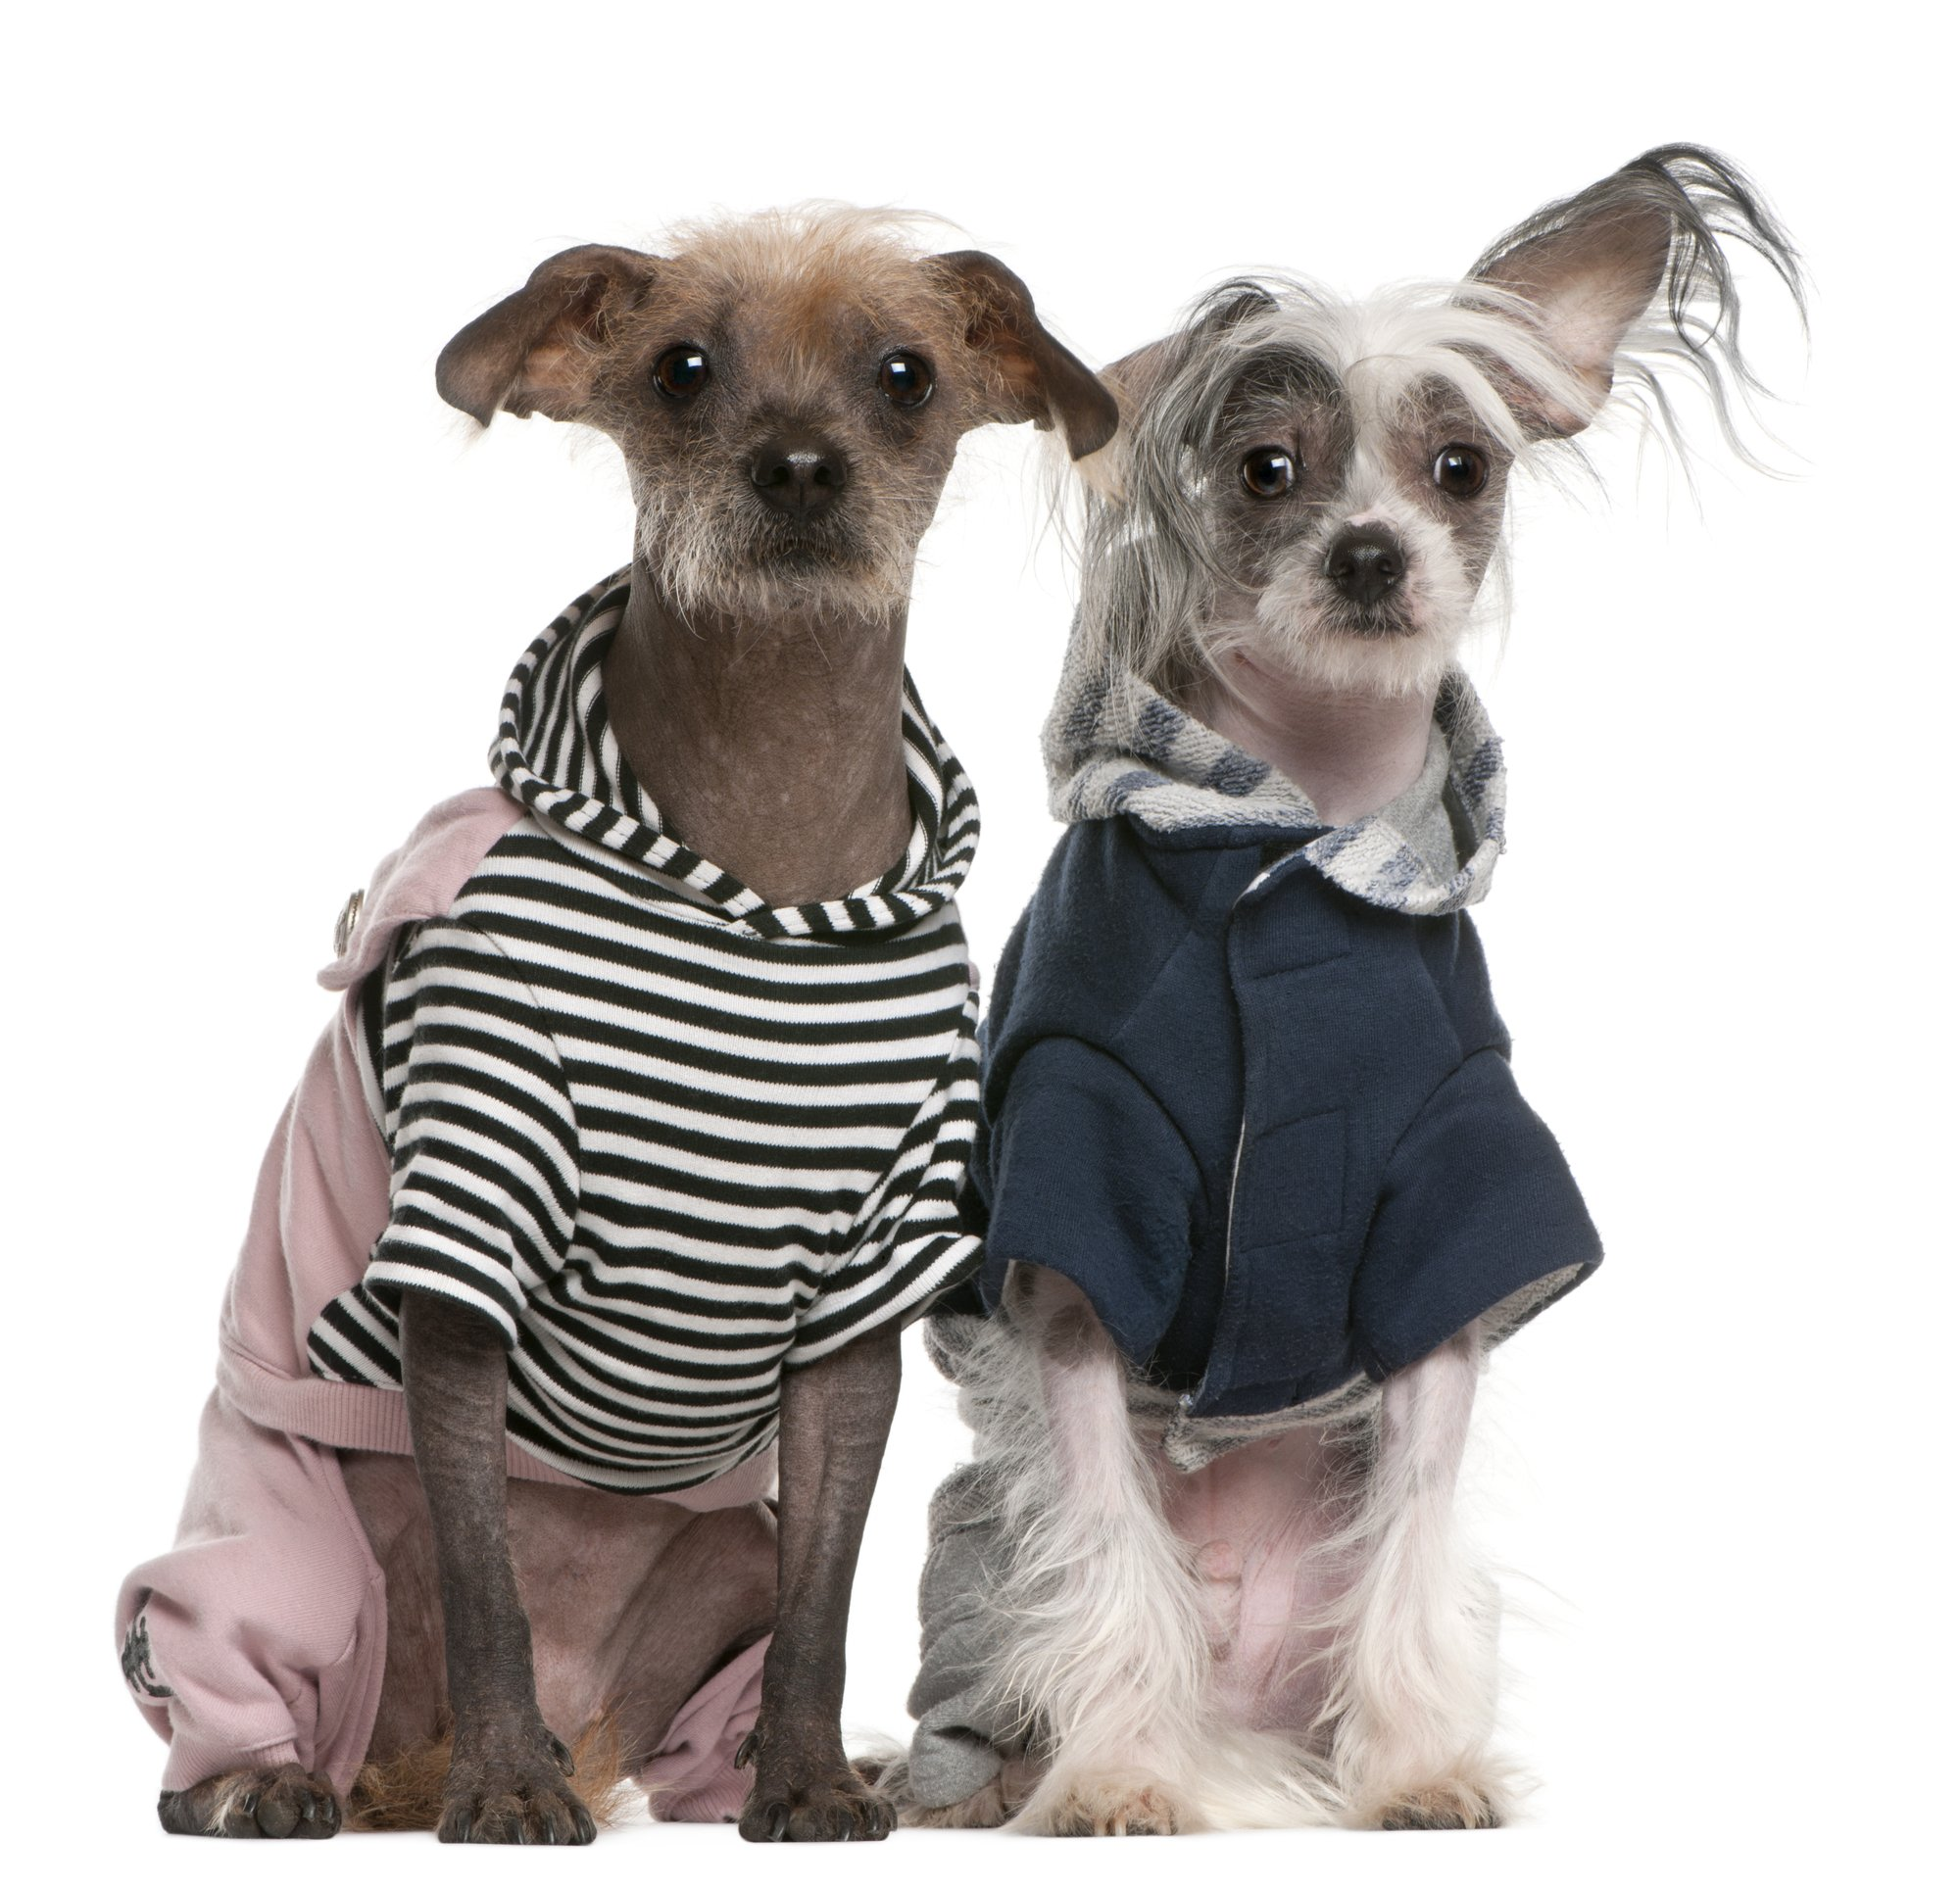 Cute Peruvian Hairless dogs all dressed up